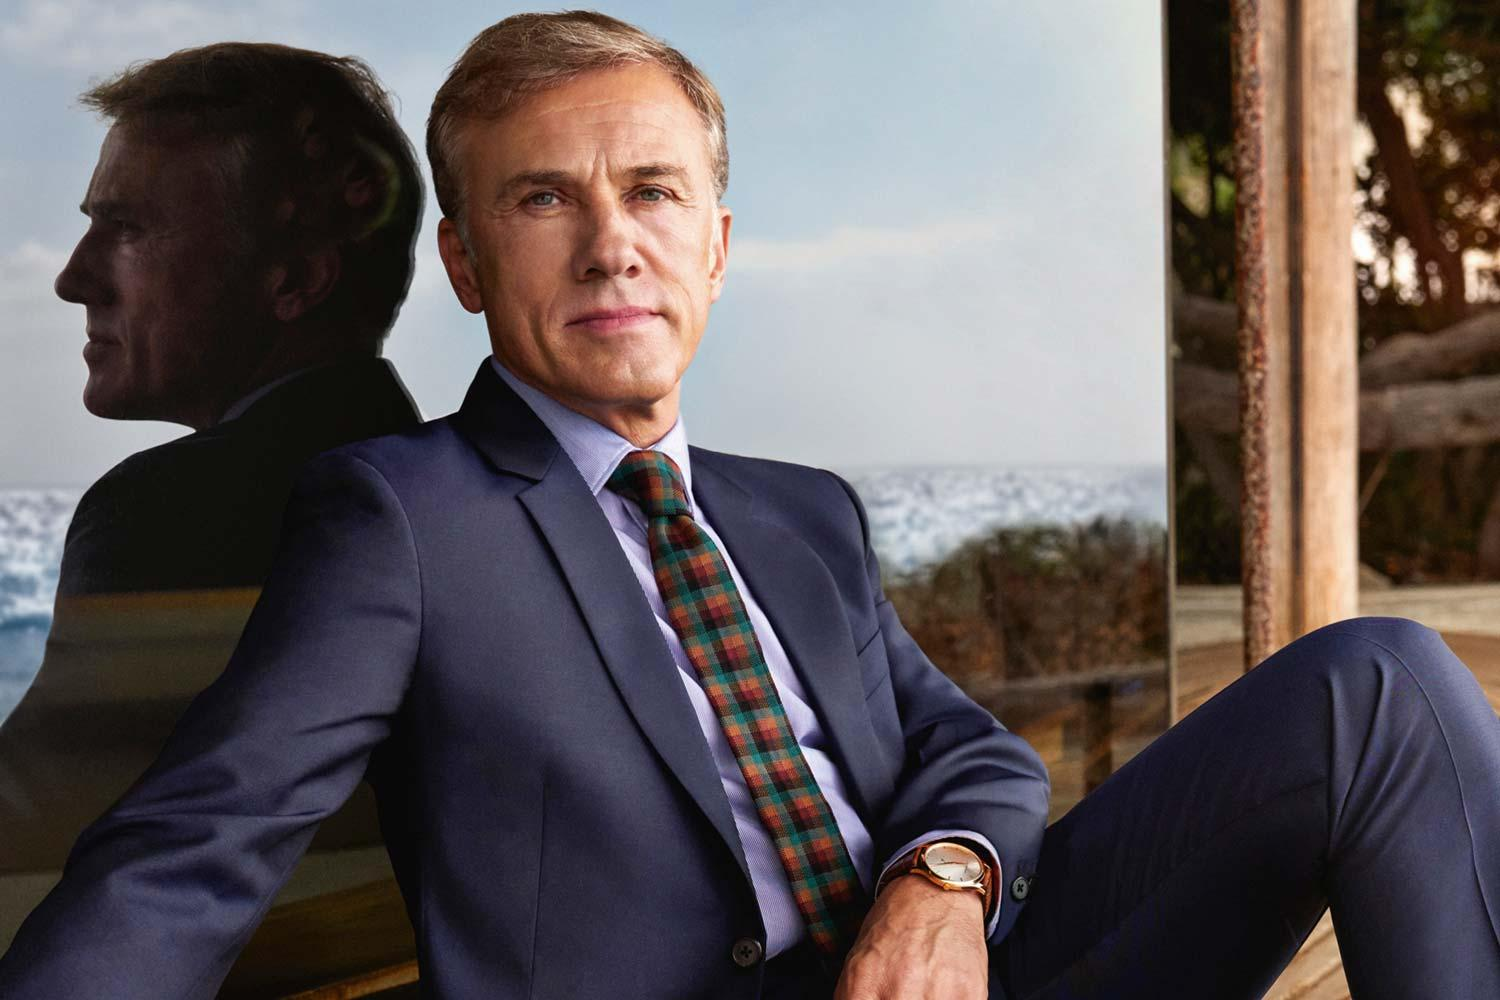 Two-Time Oscar Winner Christoph Waltz Joins Upcoming Film